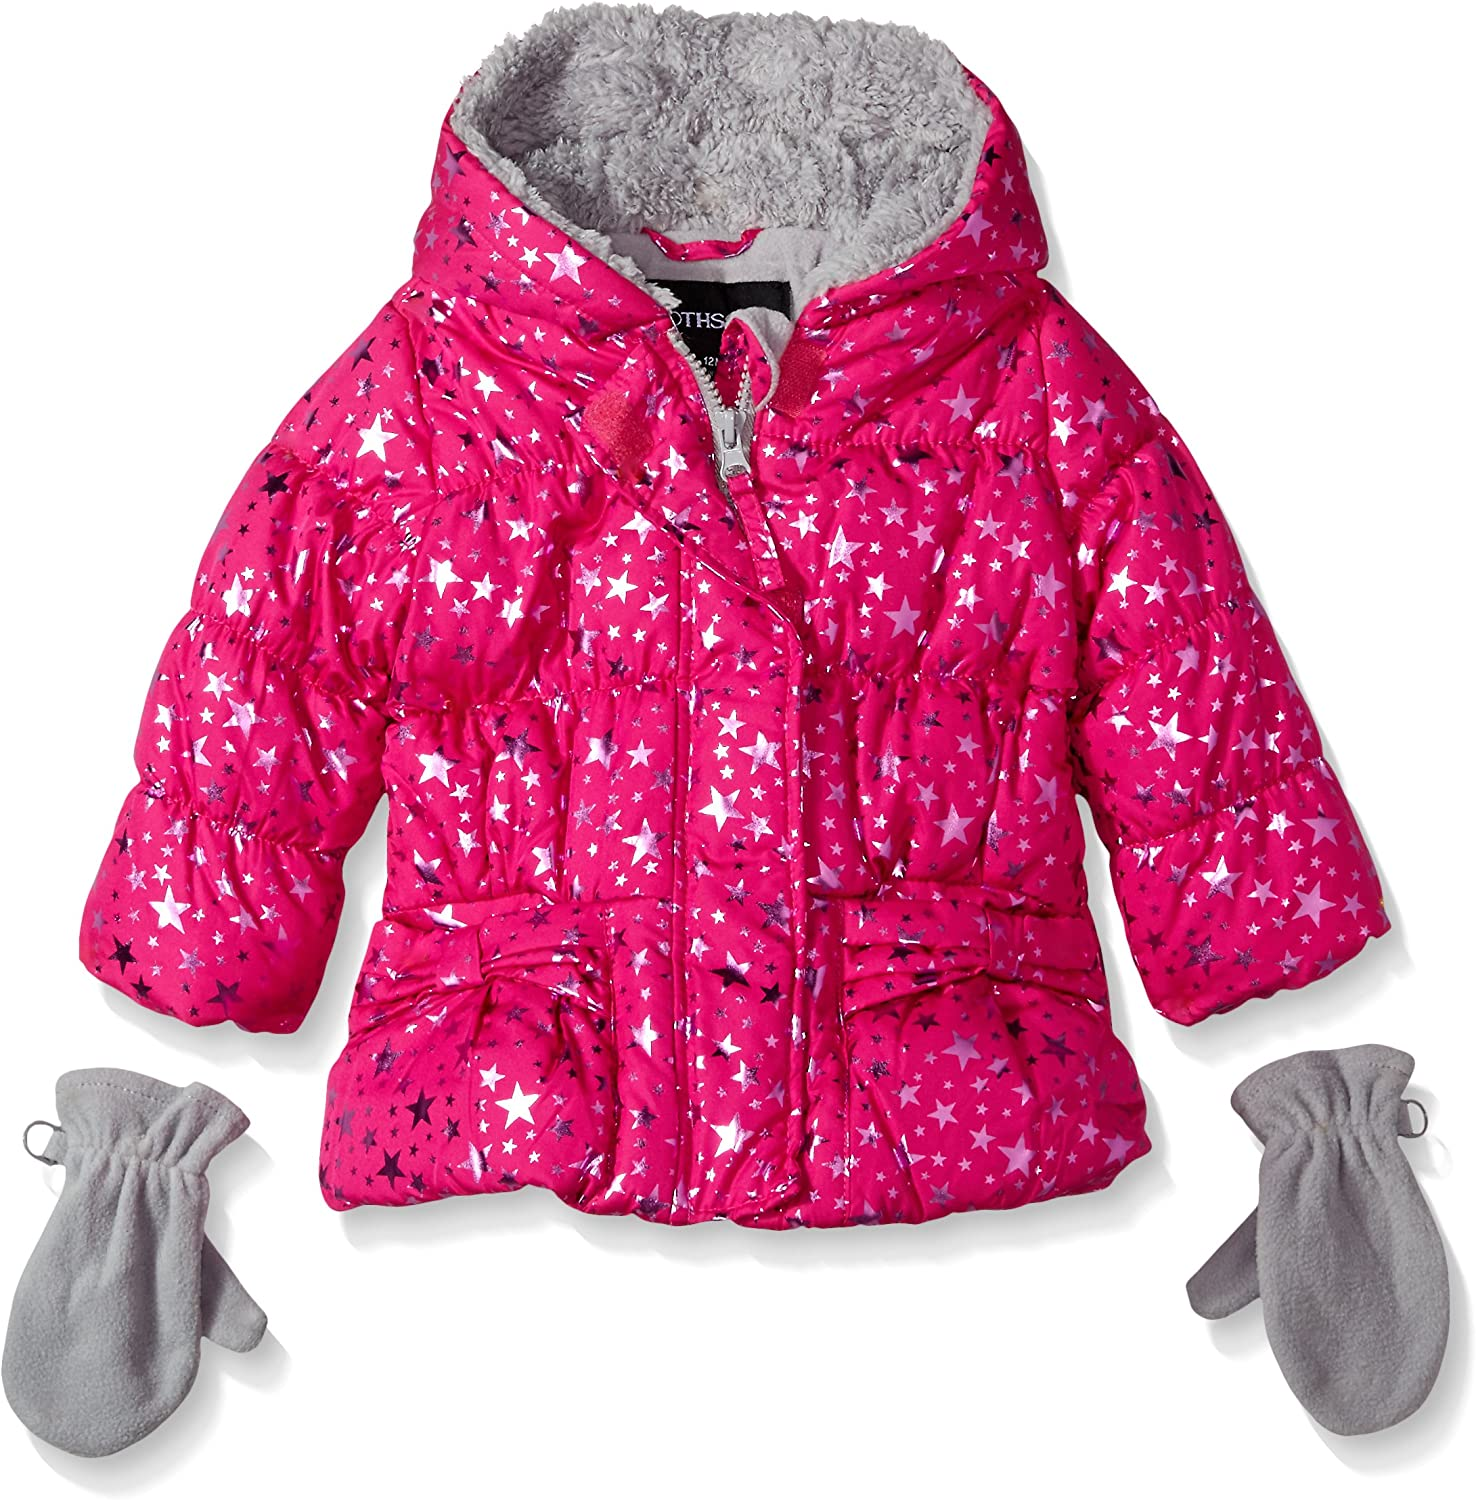 Rothschild Baby-Girls Star Large High material special price Foil Jacket Ruby Light Months 12